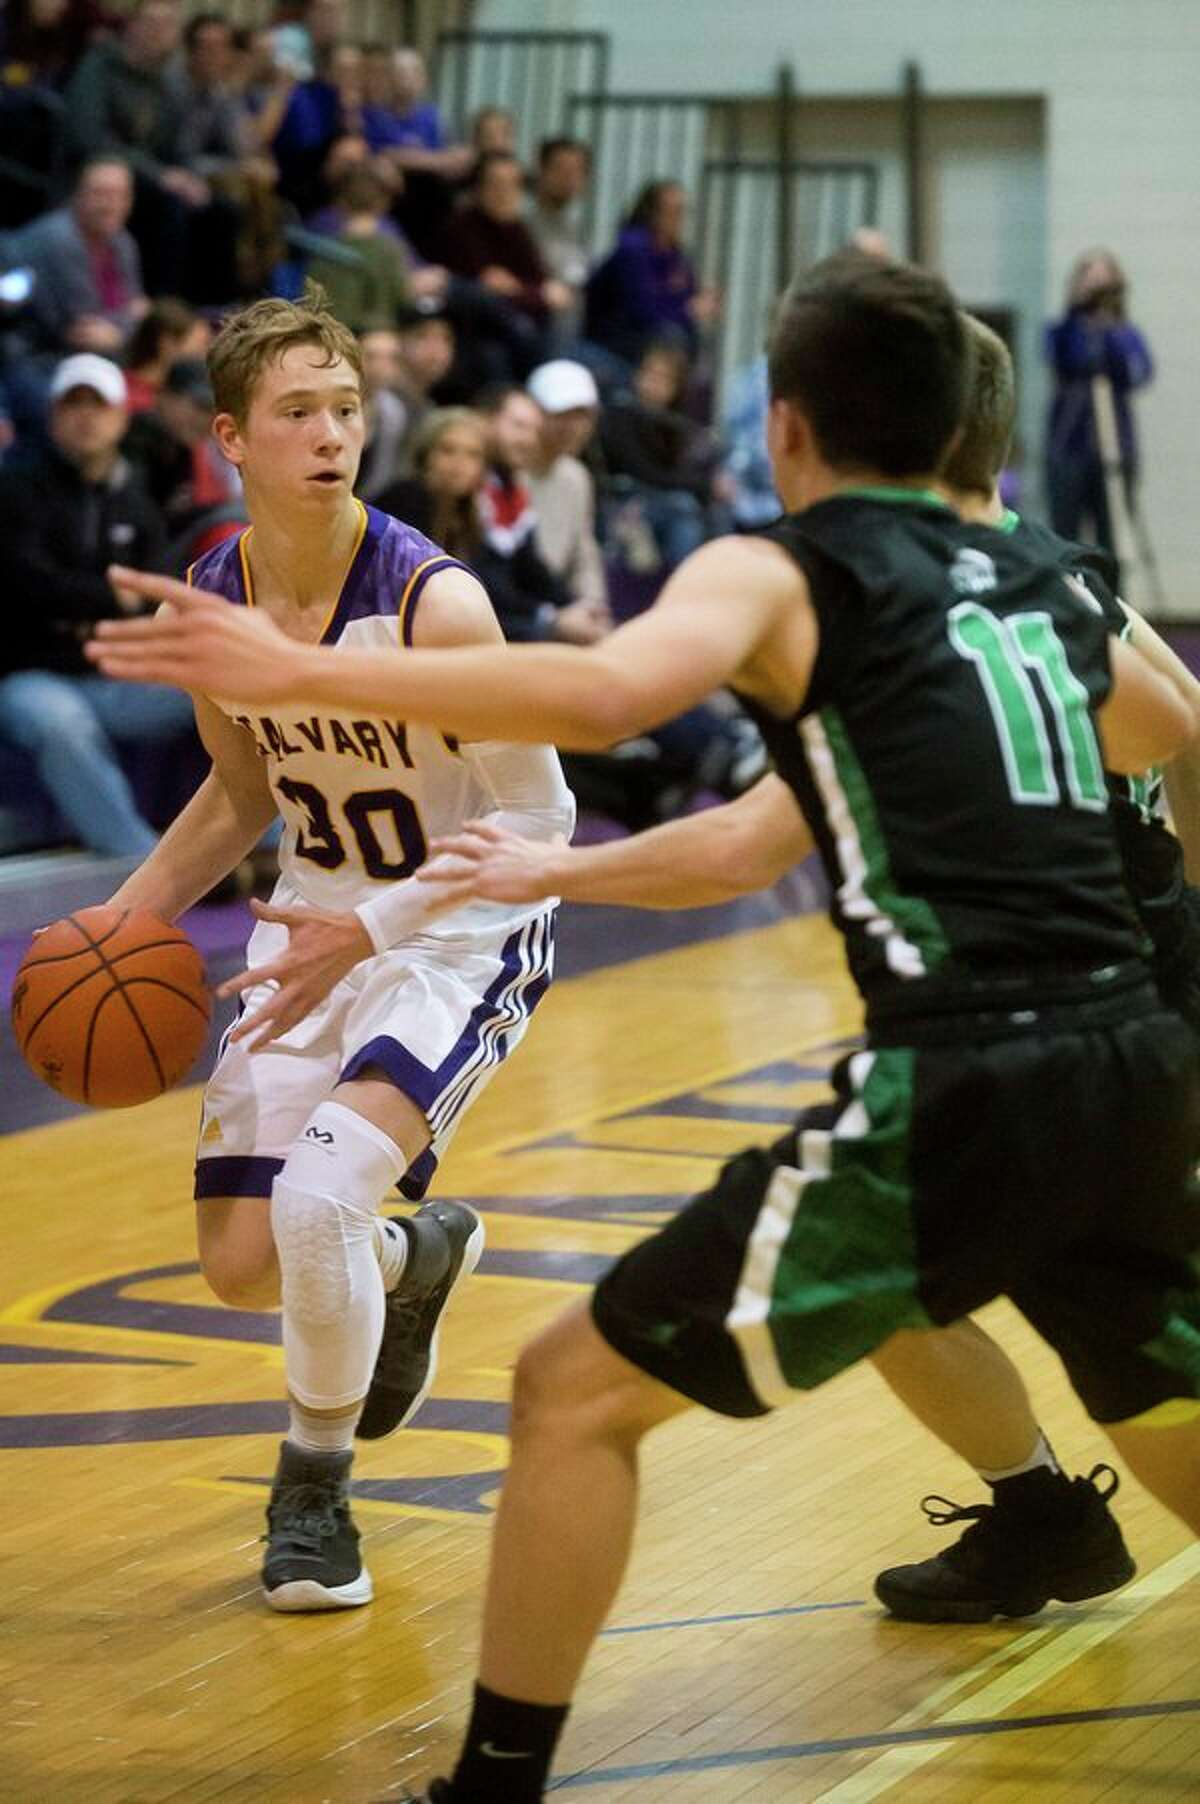 Calvary Baptist's Mark Dickerson dribbles down the court duringa game against Houghton Lake at CBA this past January. (Daily News file photo)